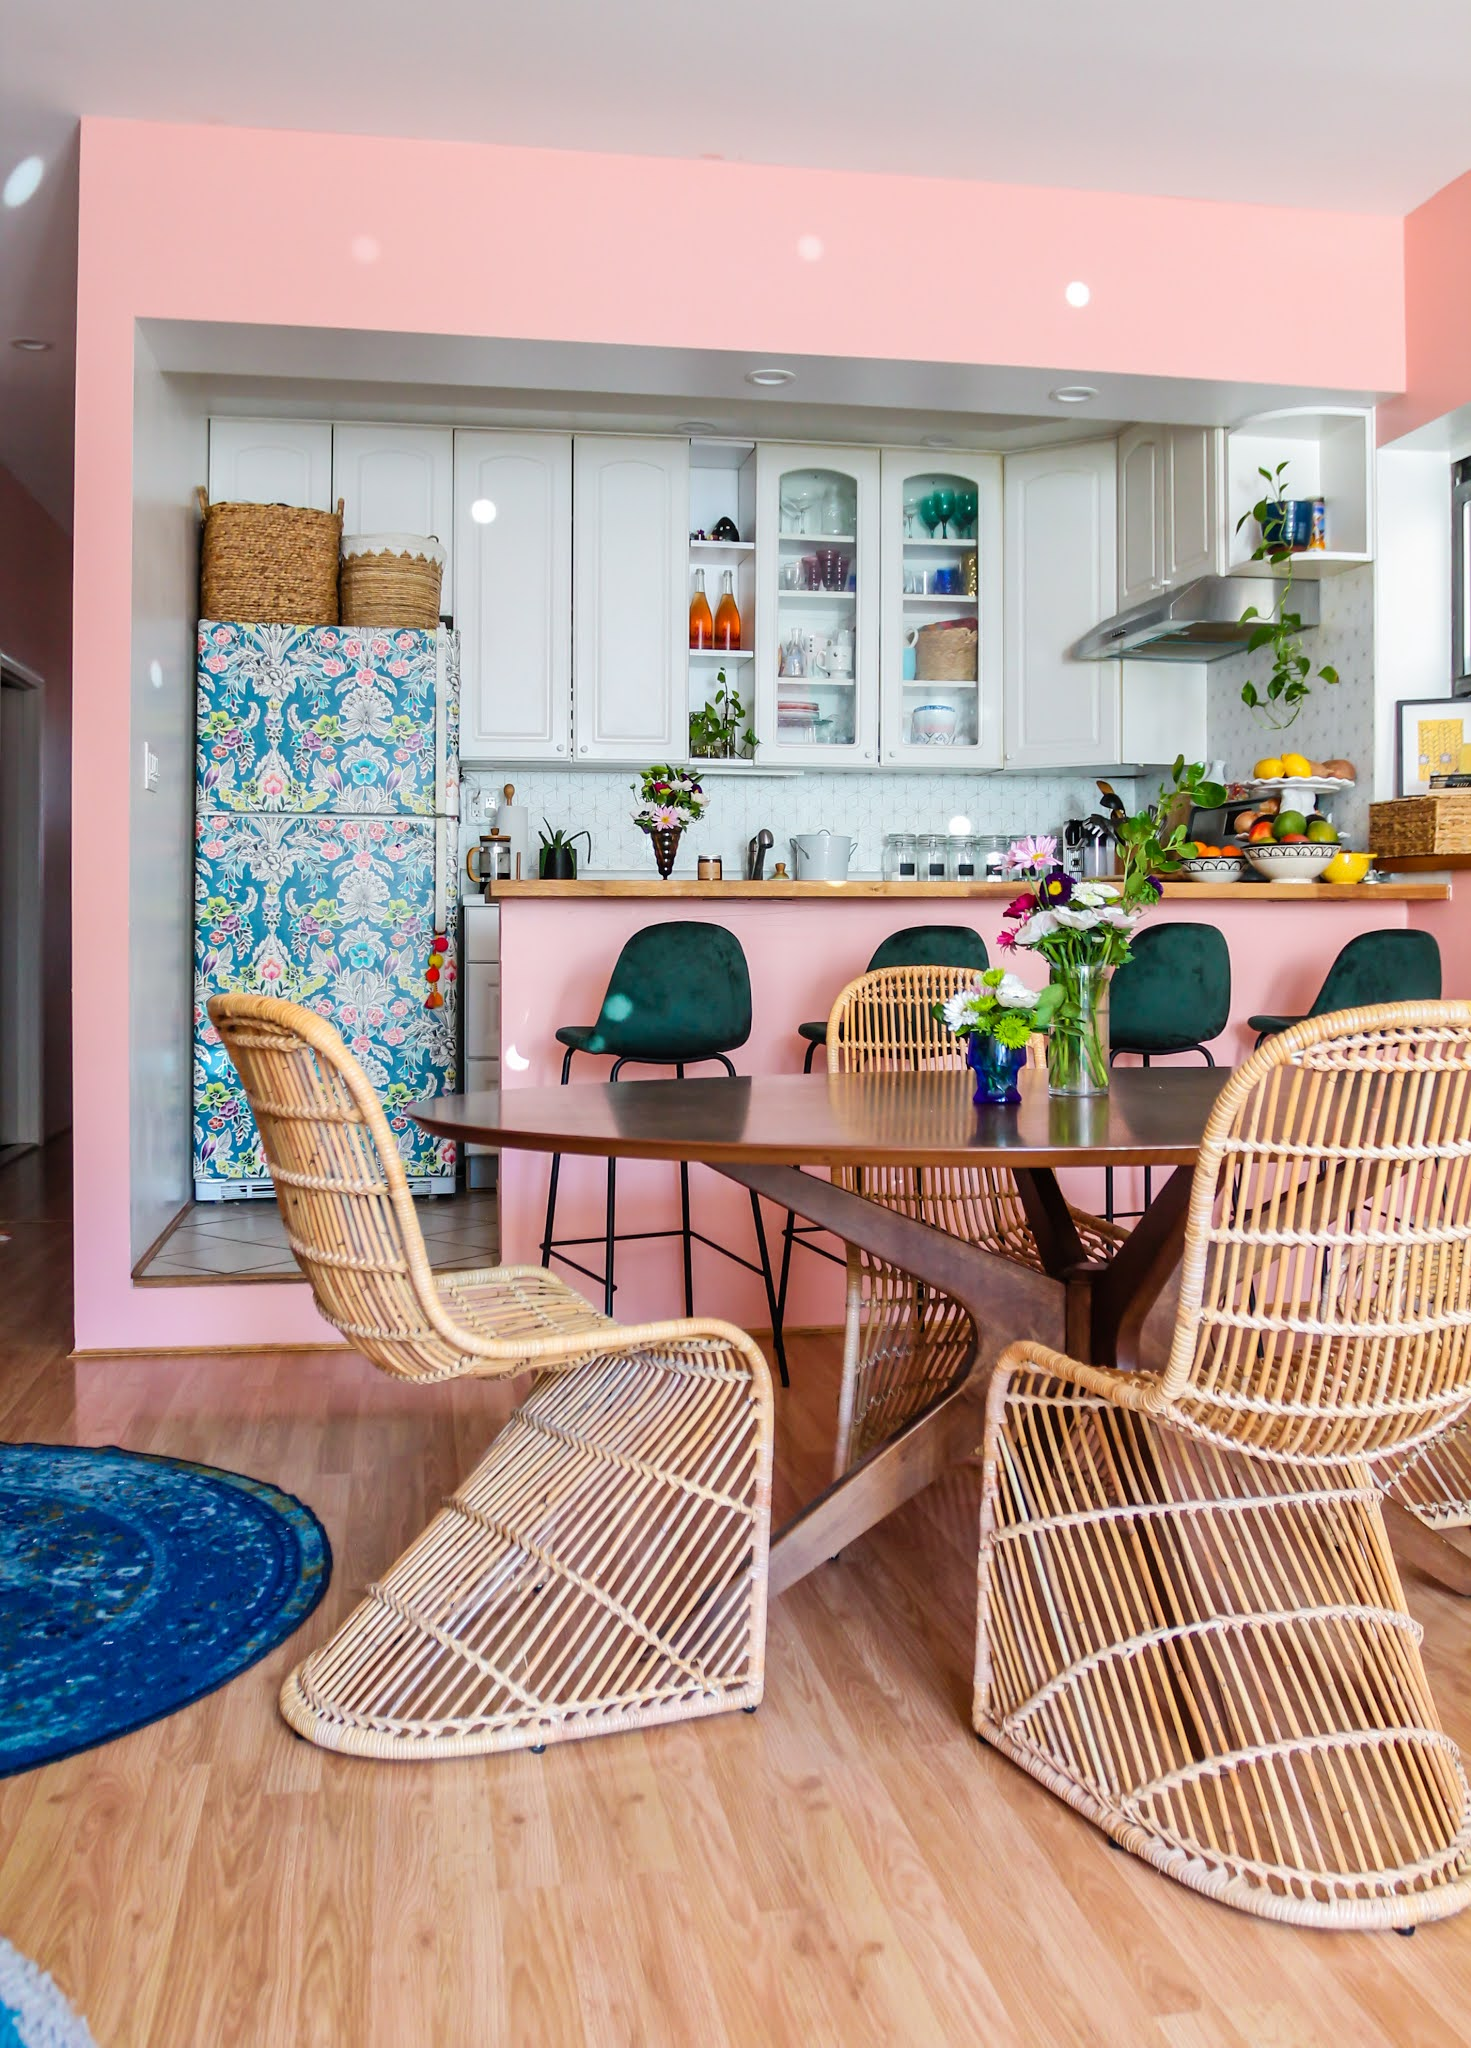 pink and green decor // green barstools // pink kitchen // diy wallpaper fridge // pink and green kitchen // colorful homes // Megan Zietz  Apartment // TfDiaries // pink and green room // pink and green Inspo // barstool inspo //rattan s chairs // mid century modern decor